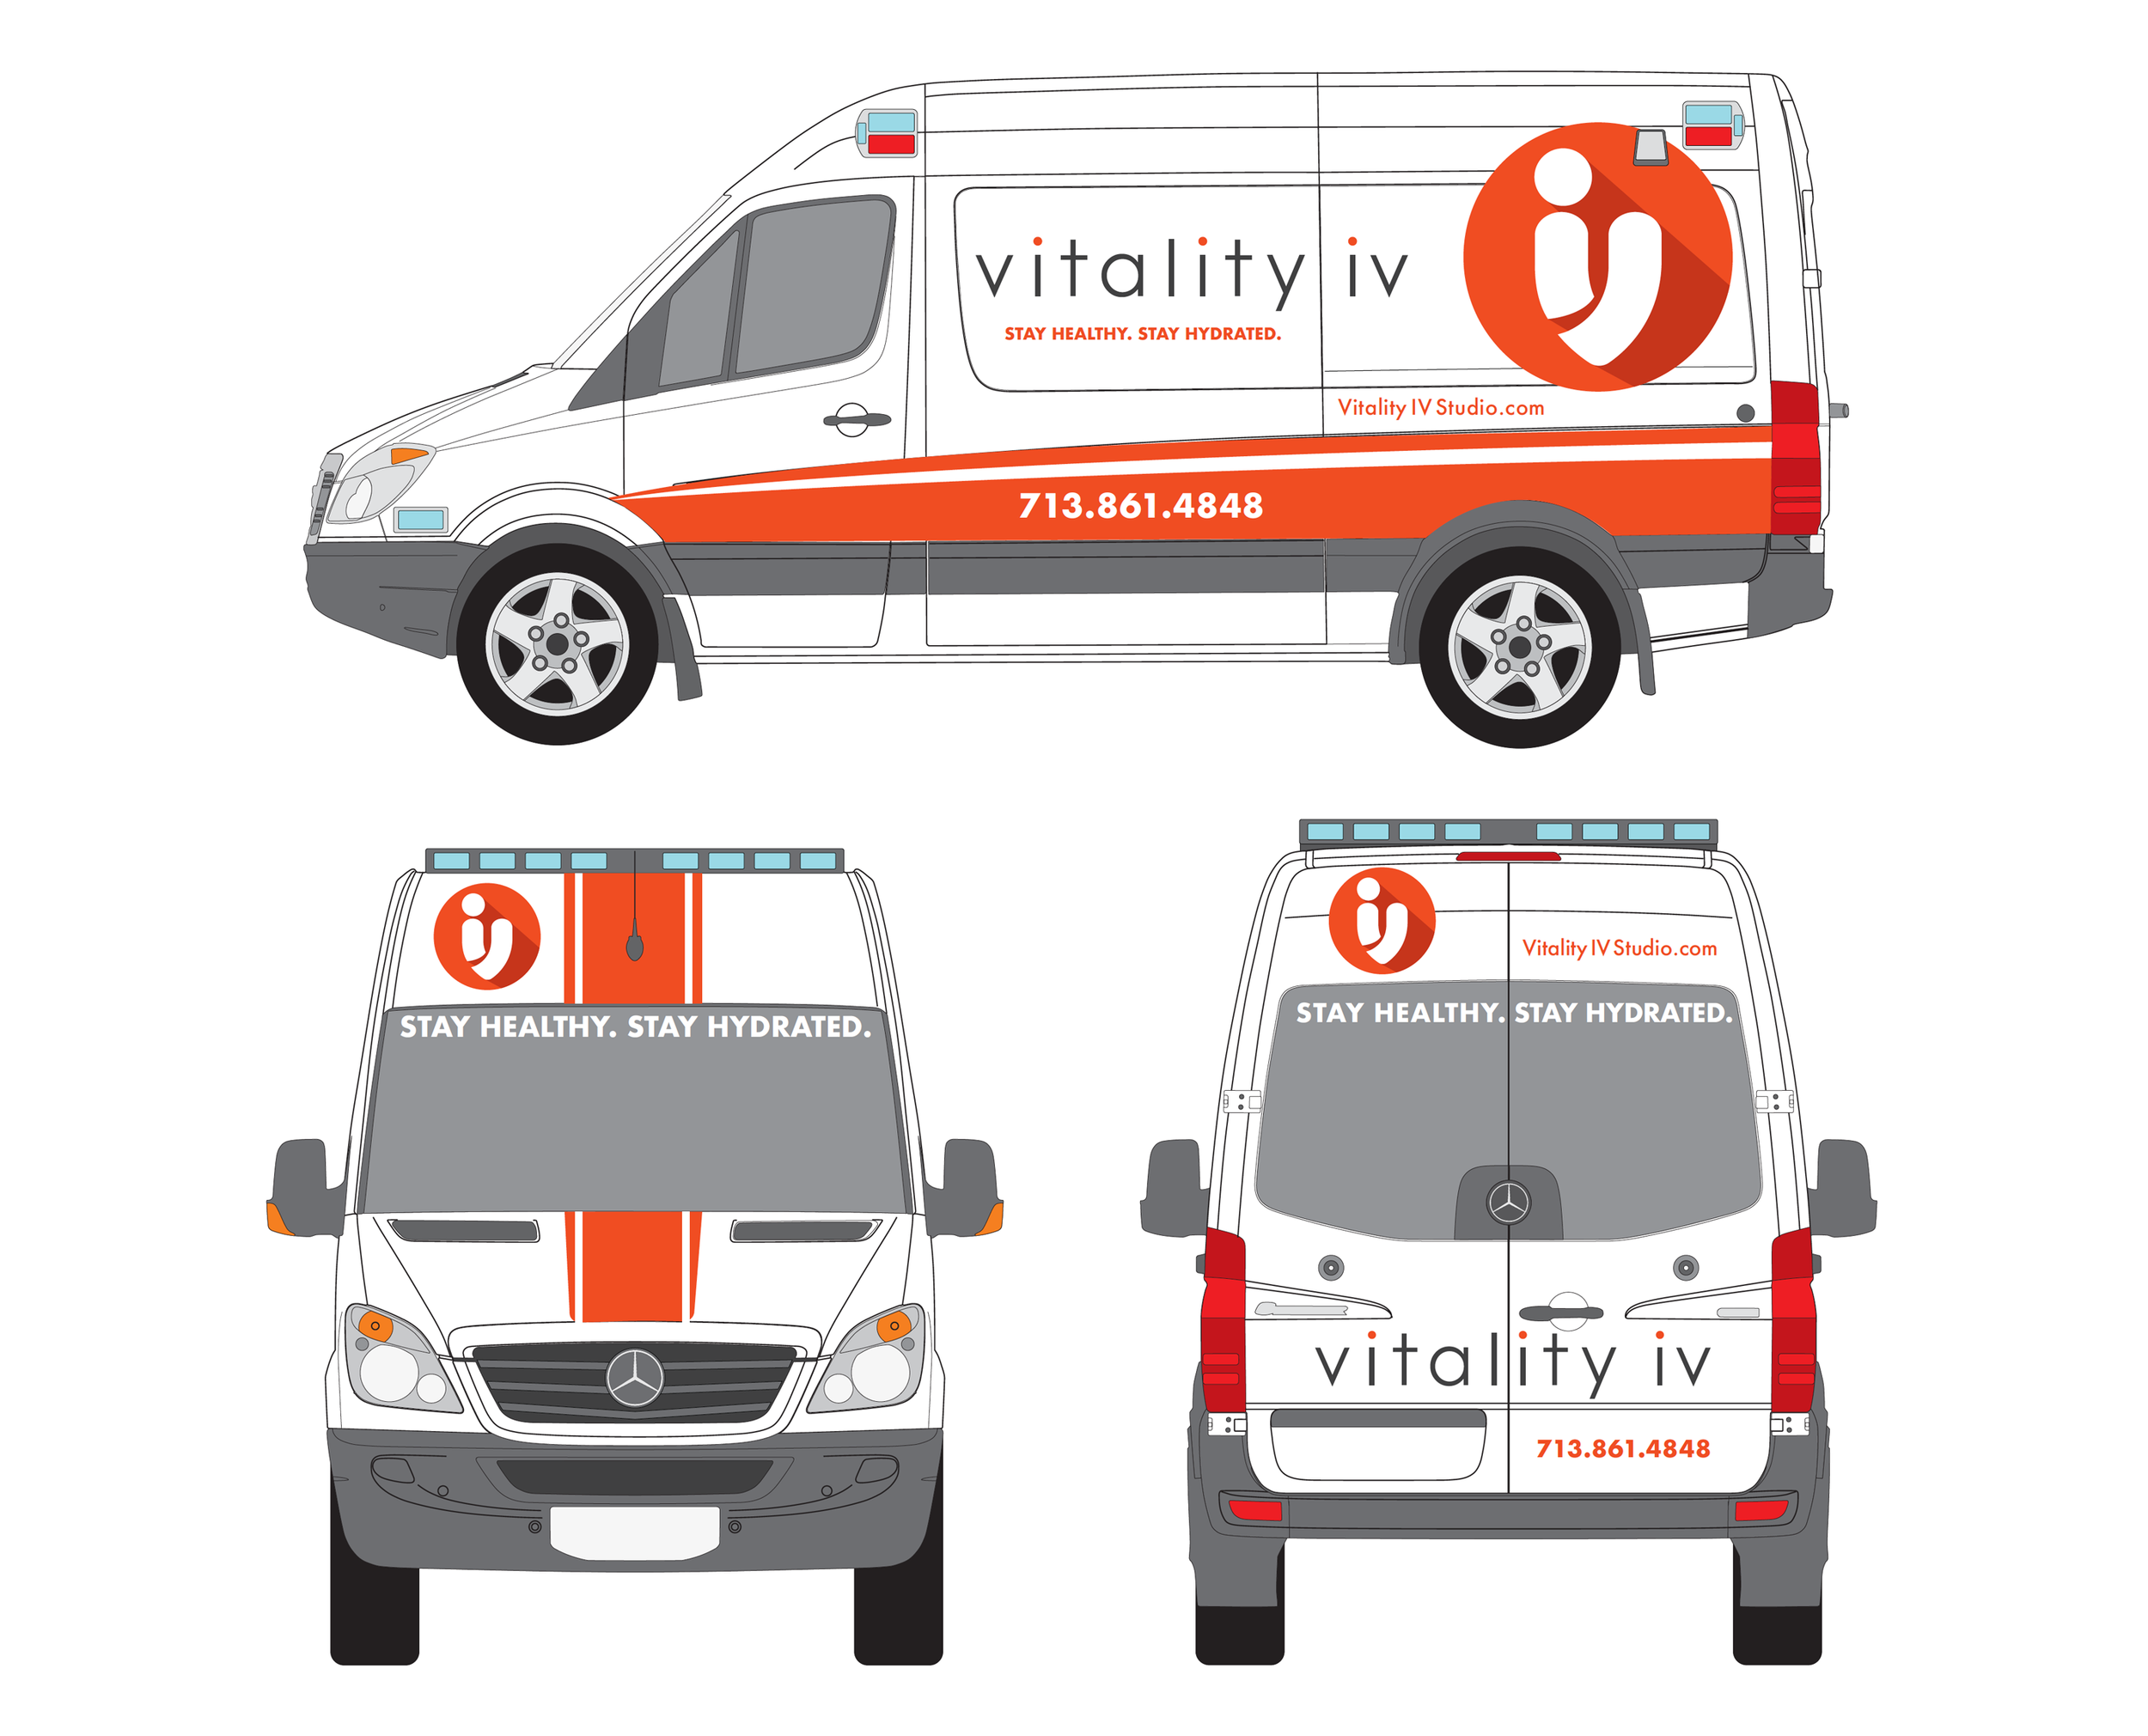 Vitality IV Mobile Unit Van